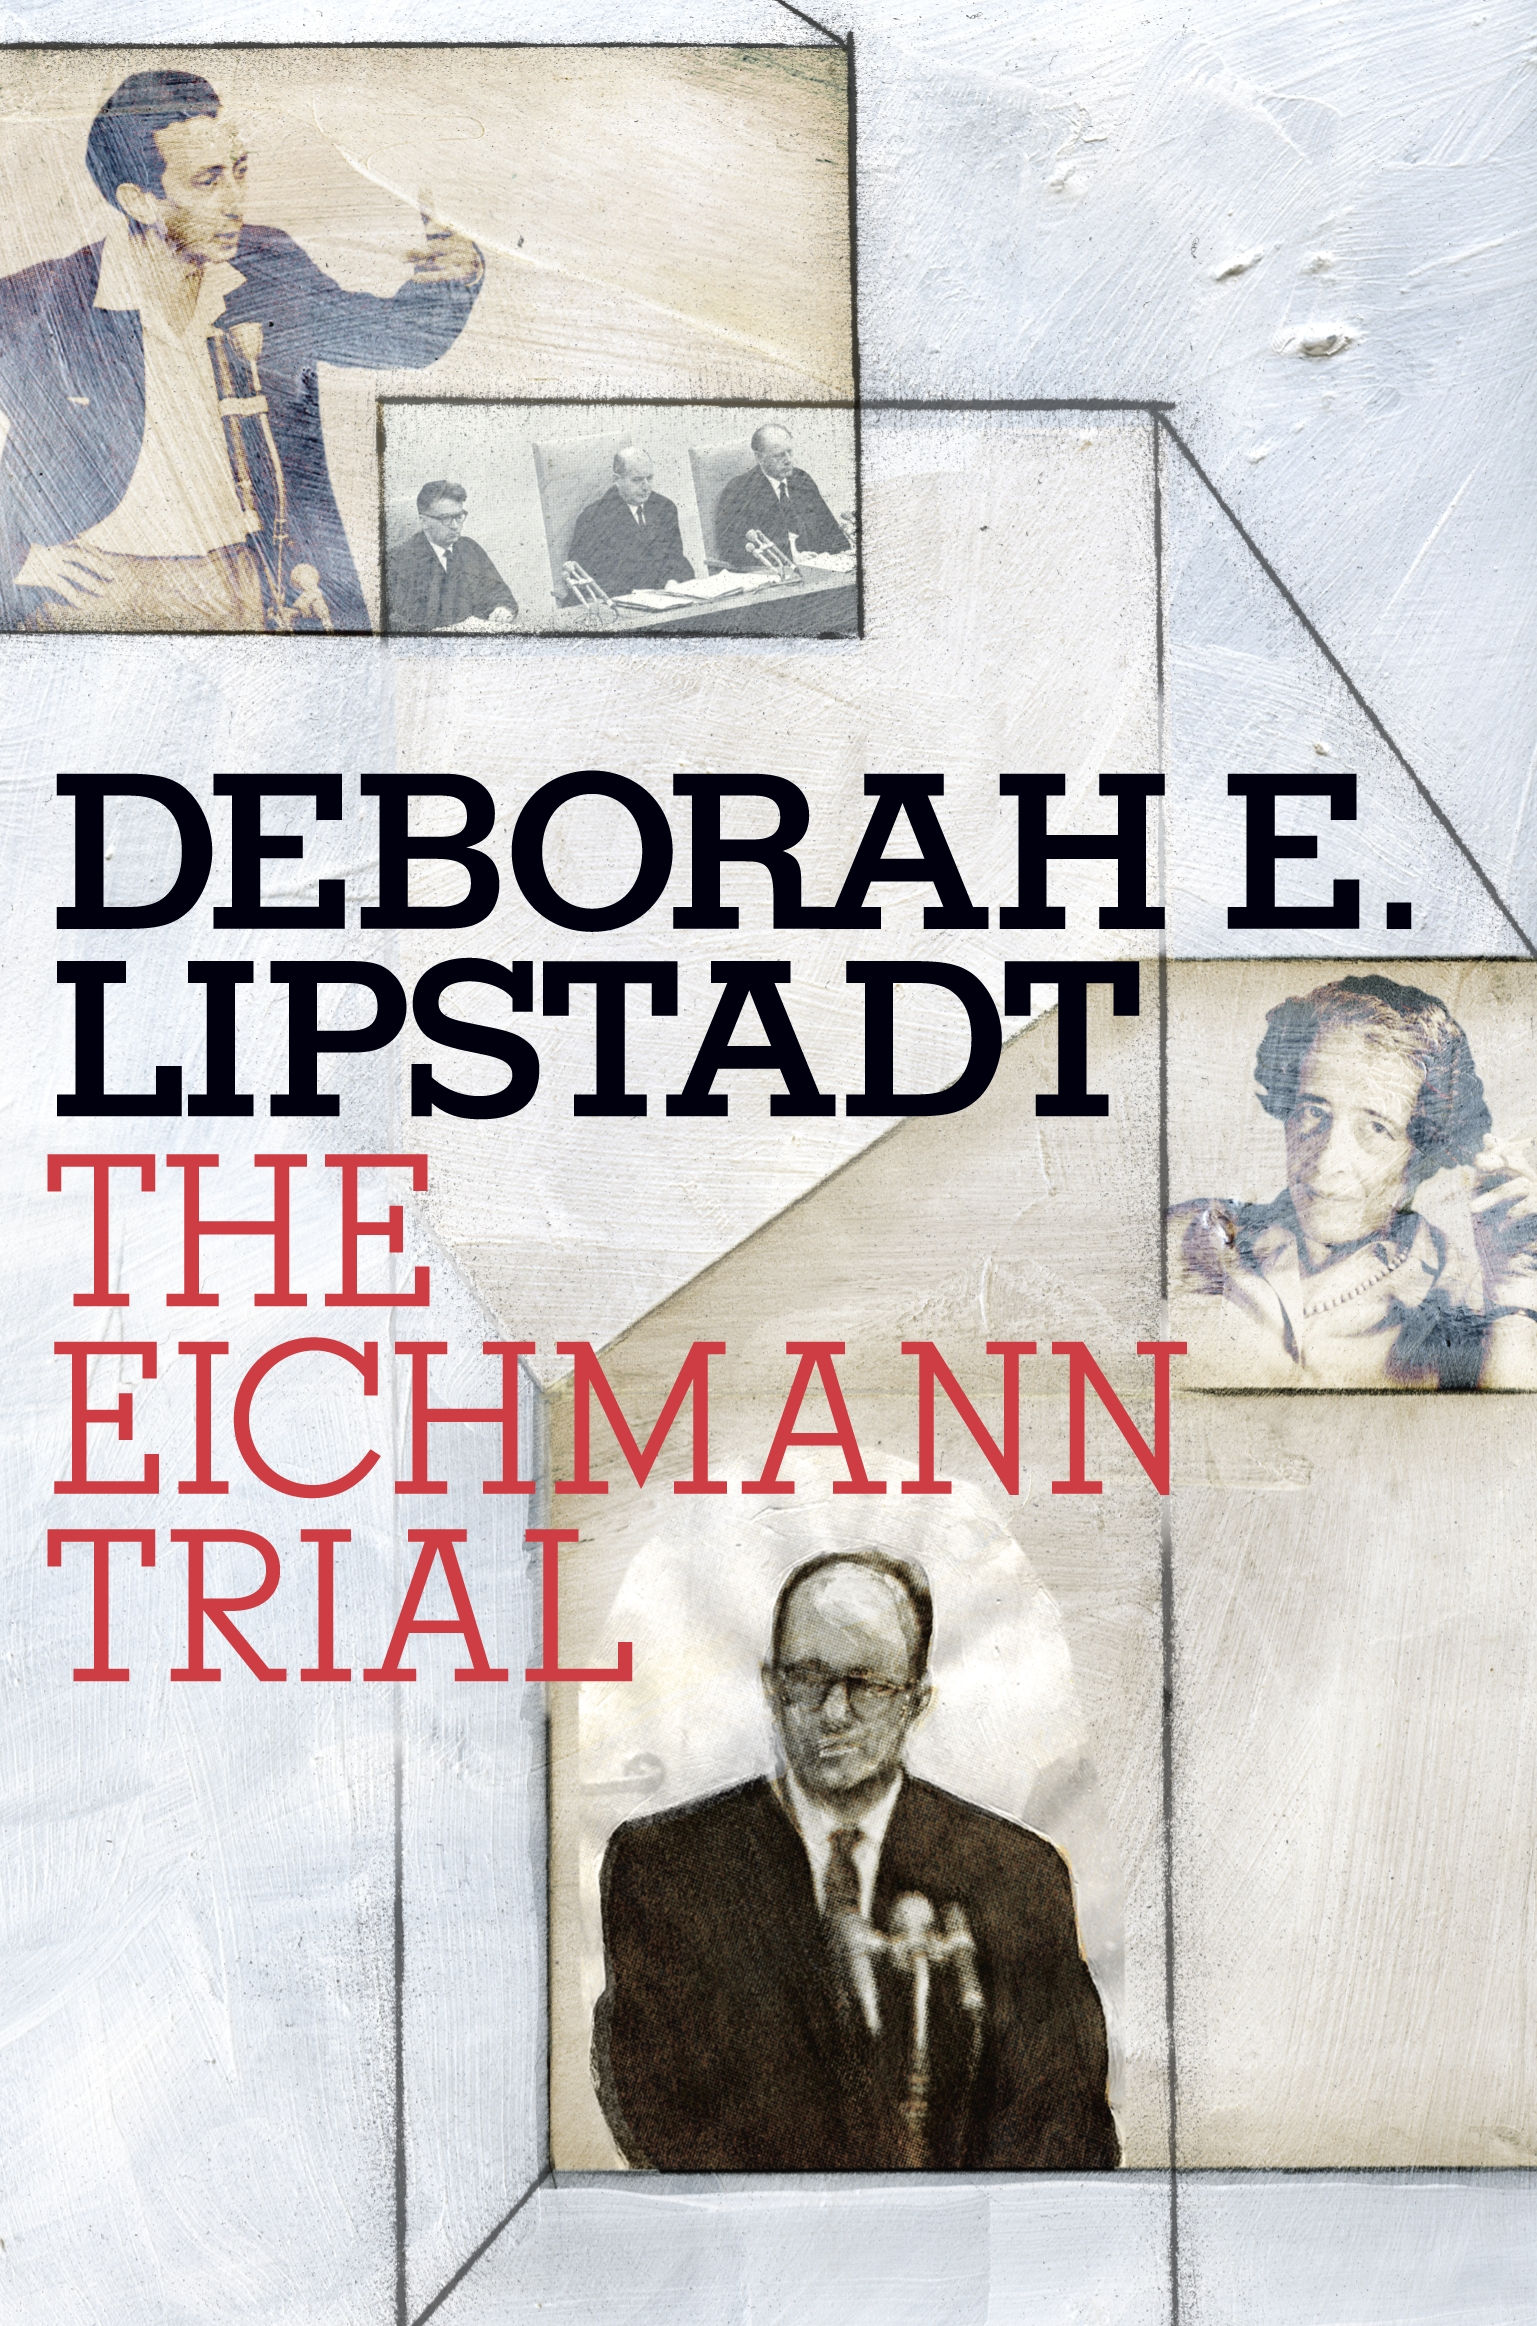 The Eichmann Trial by Deborah E. Lipstadt, ISBN: 9780805242607